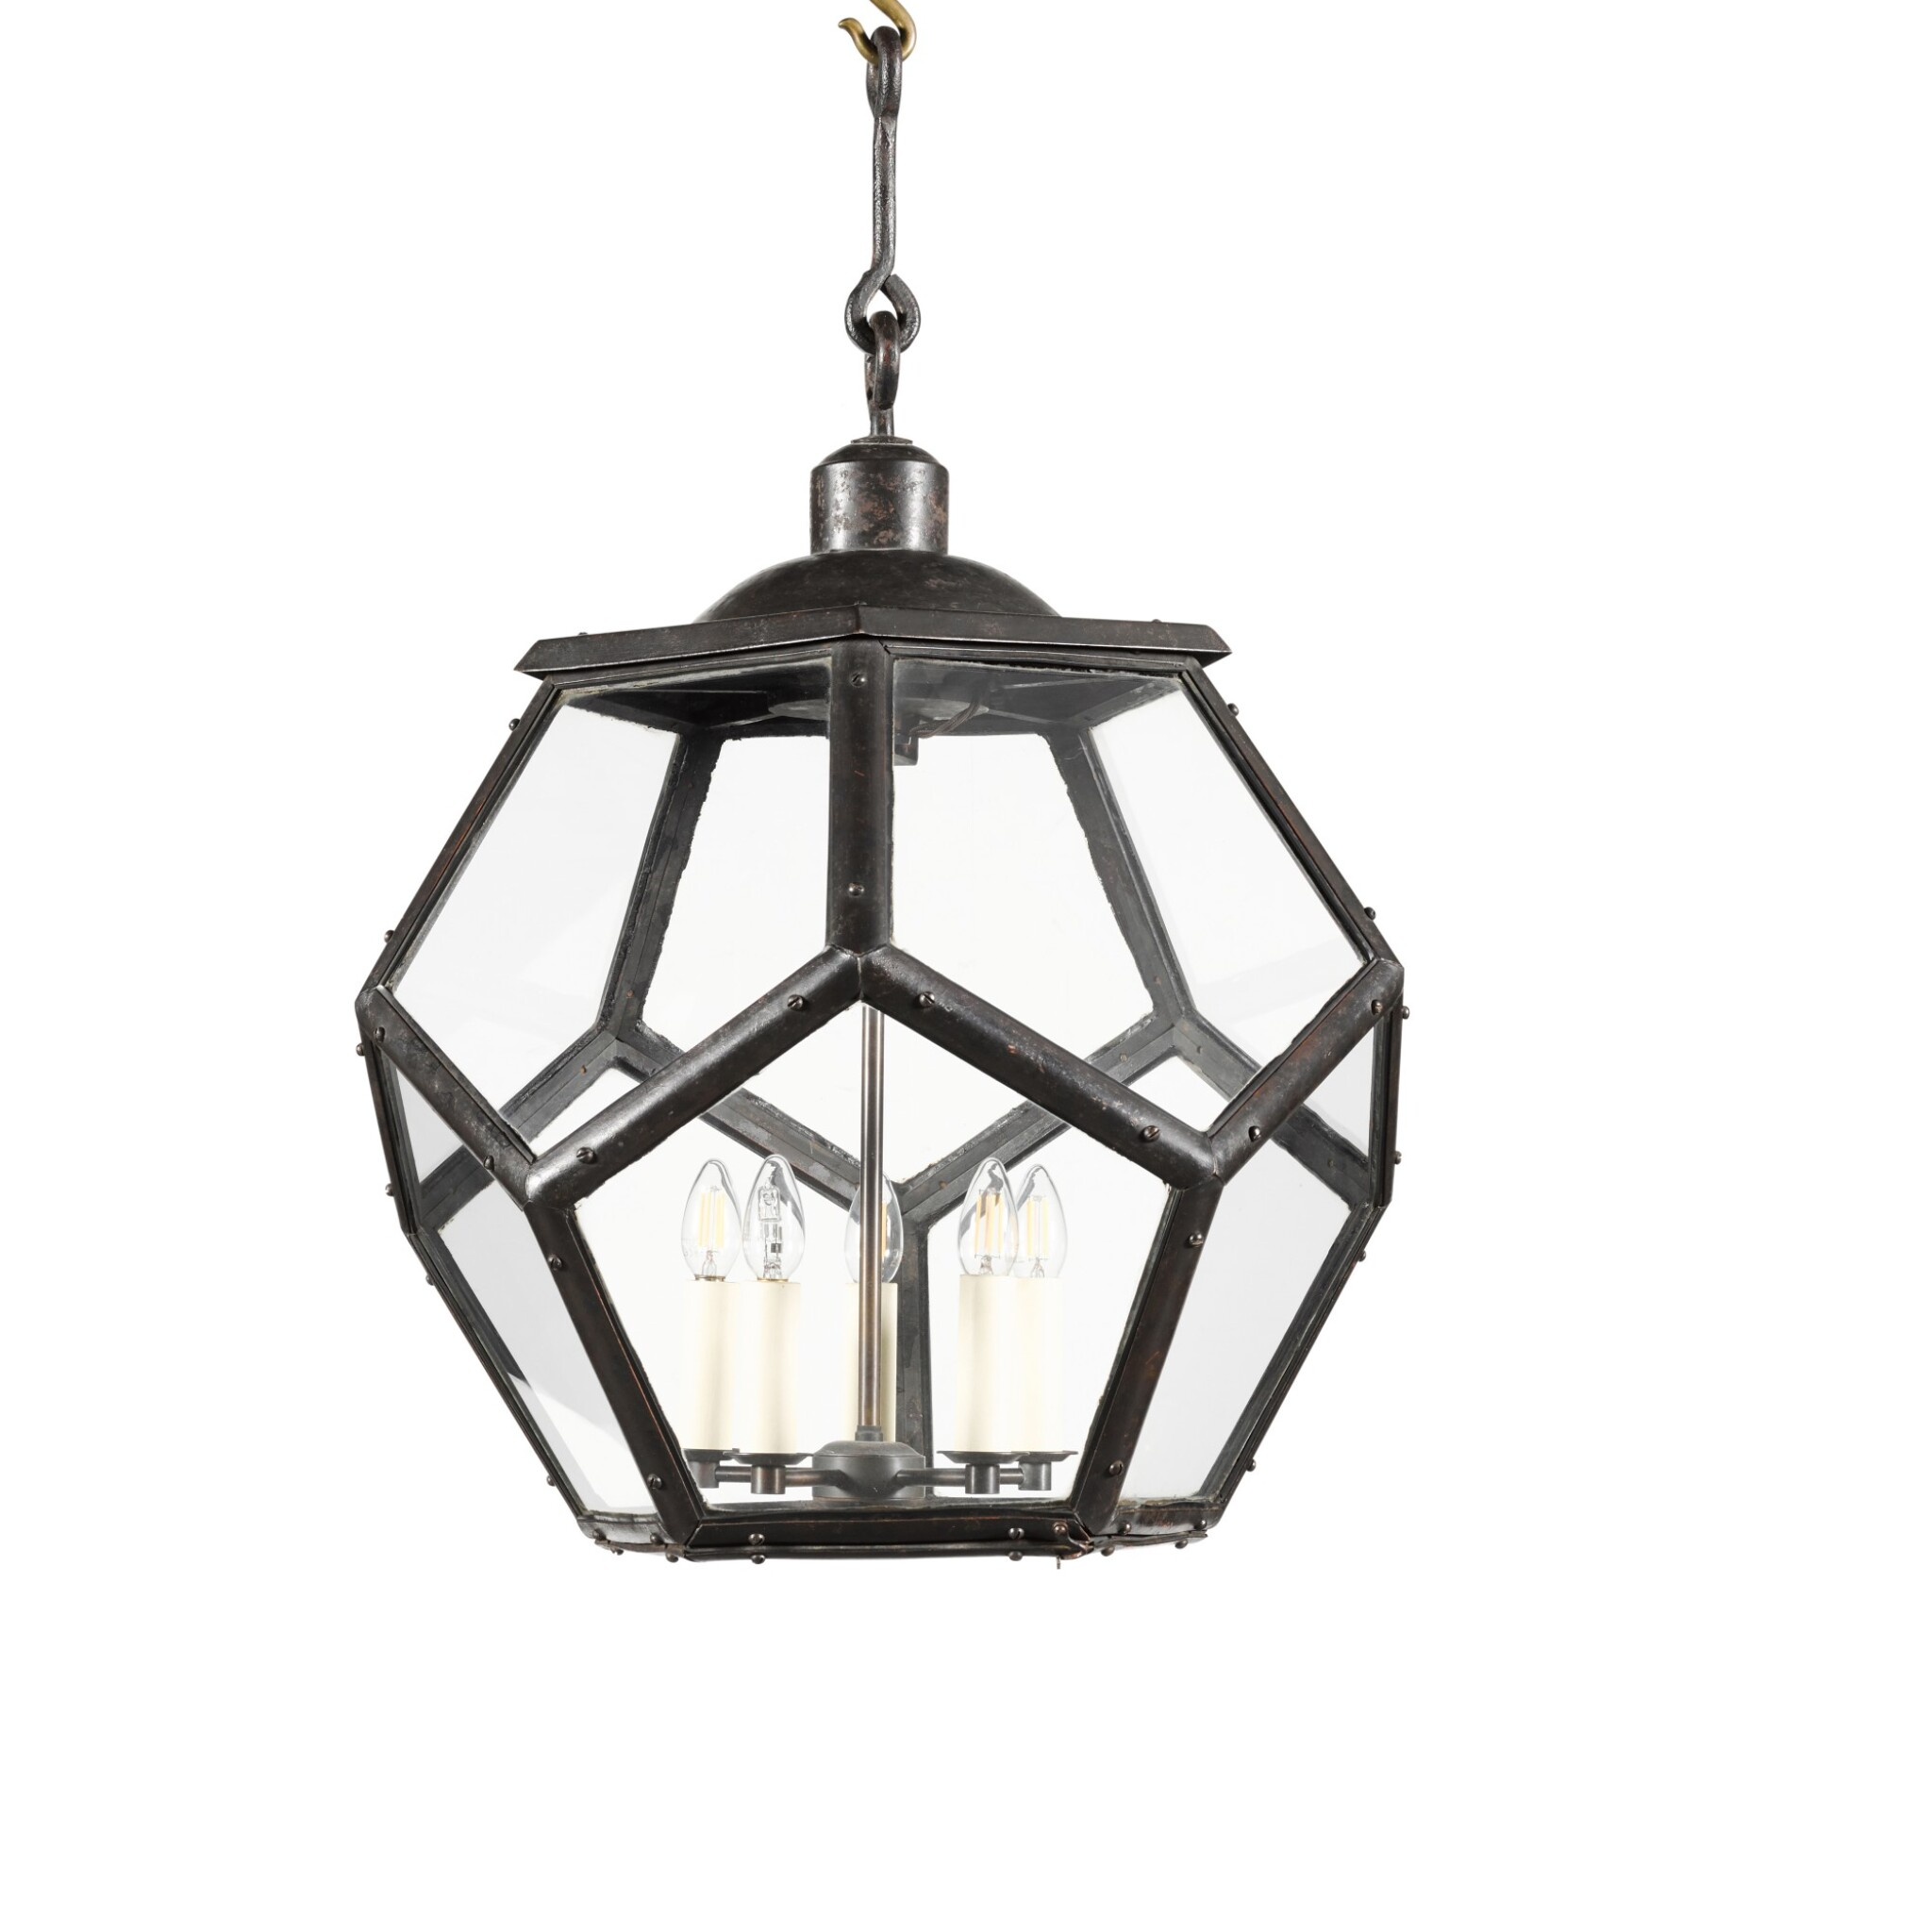 View full screen - View 1 of Lot 116. A LARGE PATINATED BRASS LANTERN, EARLY 20TH CENTURY, IN THE MANNER OF ADOLF LOOS.